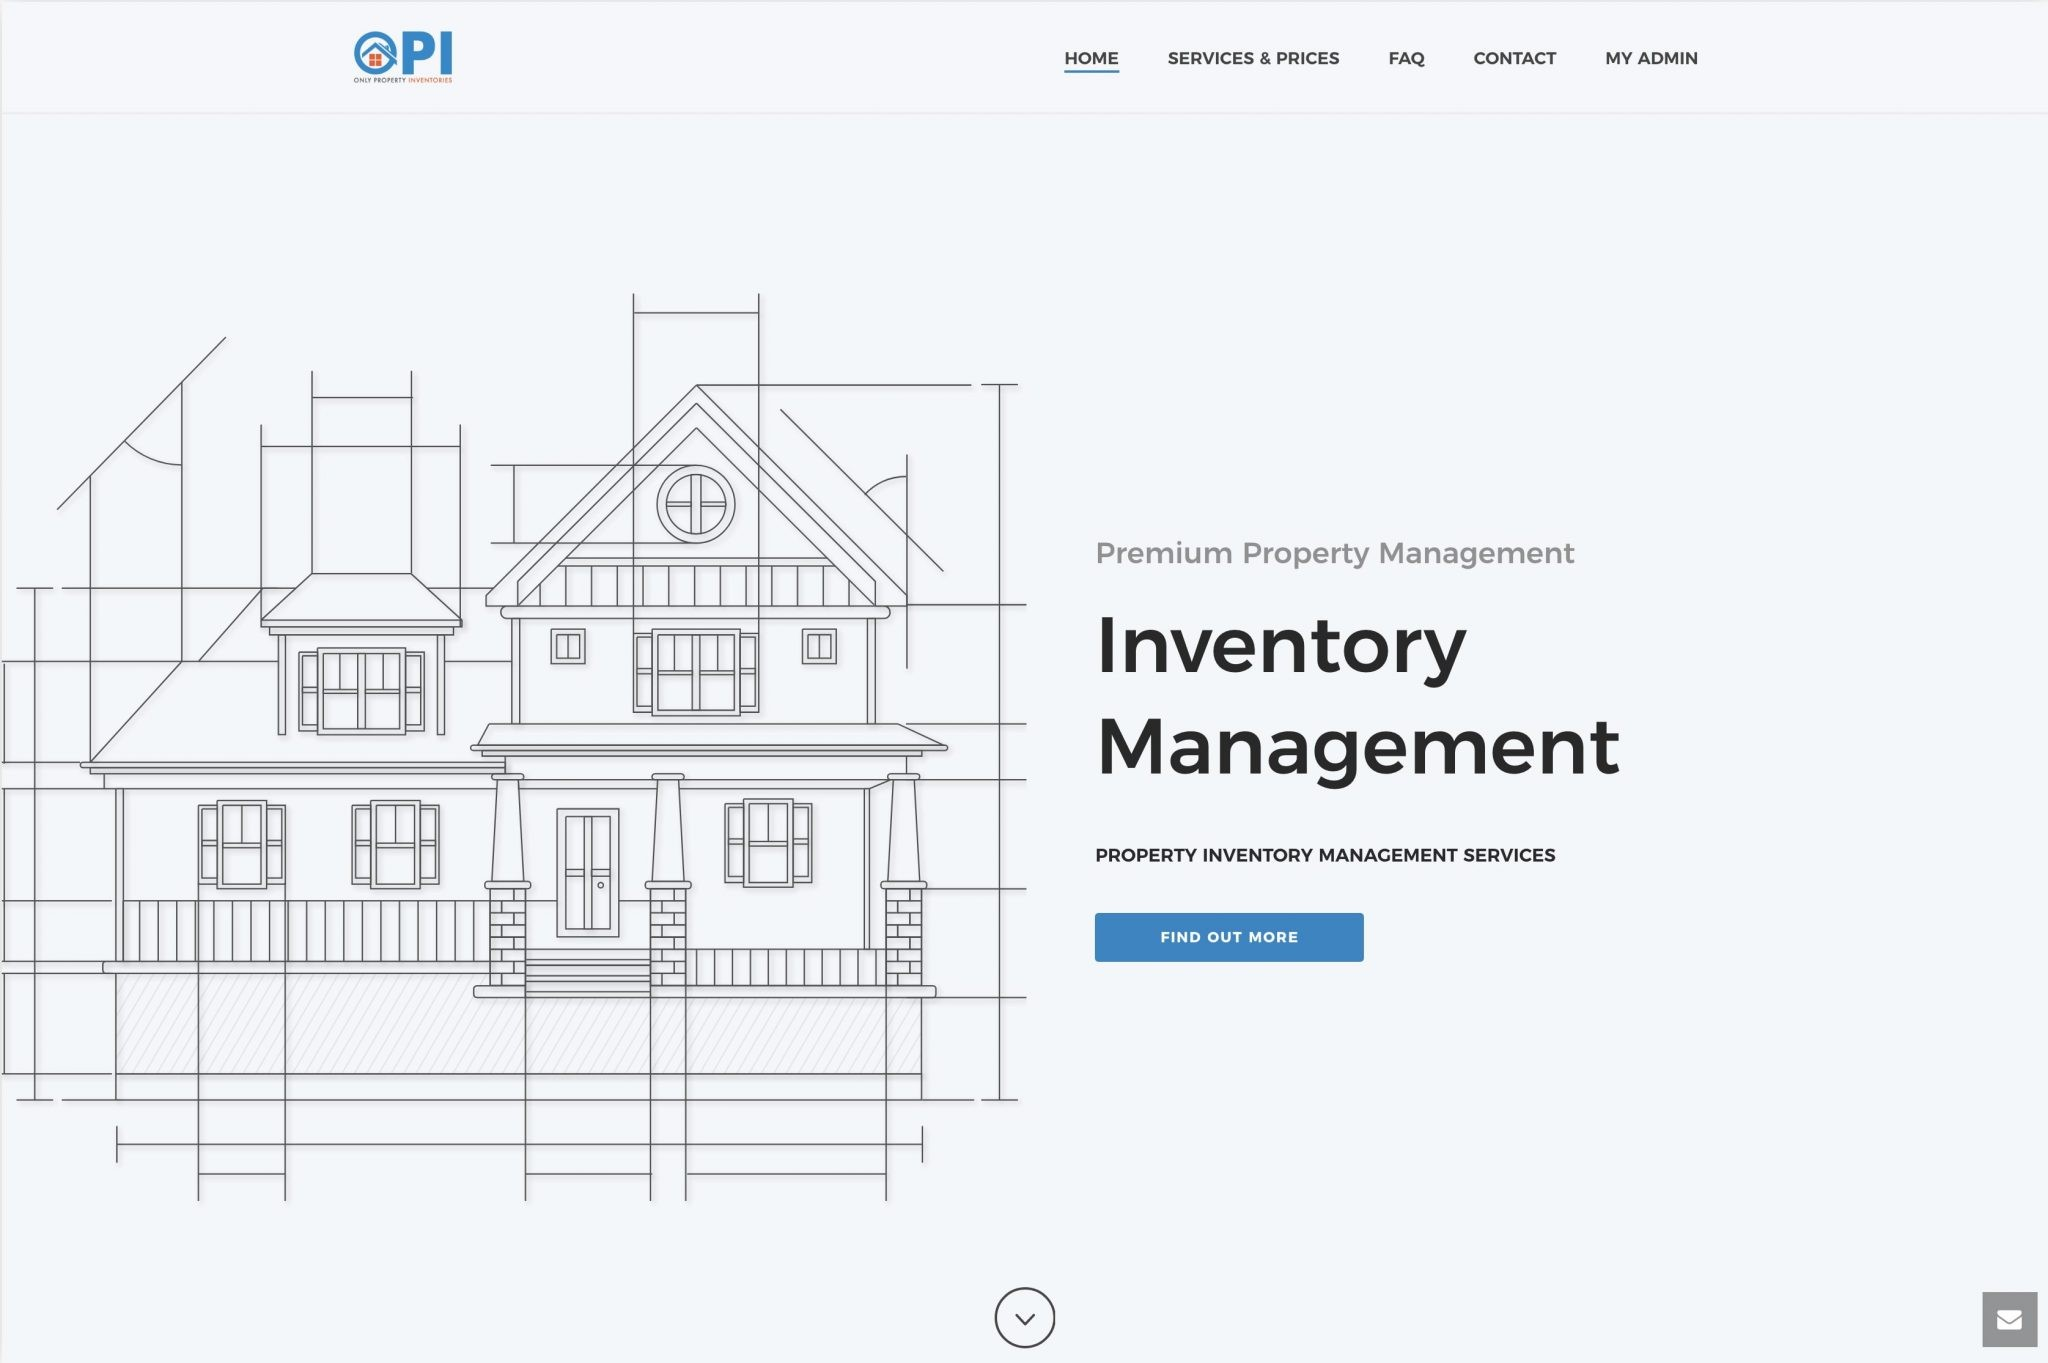 Only Property Inventories